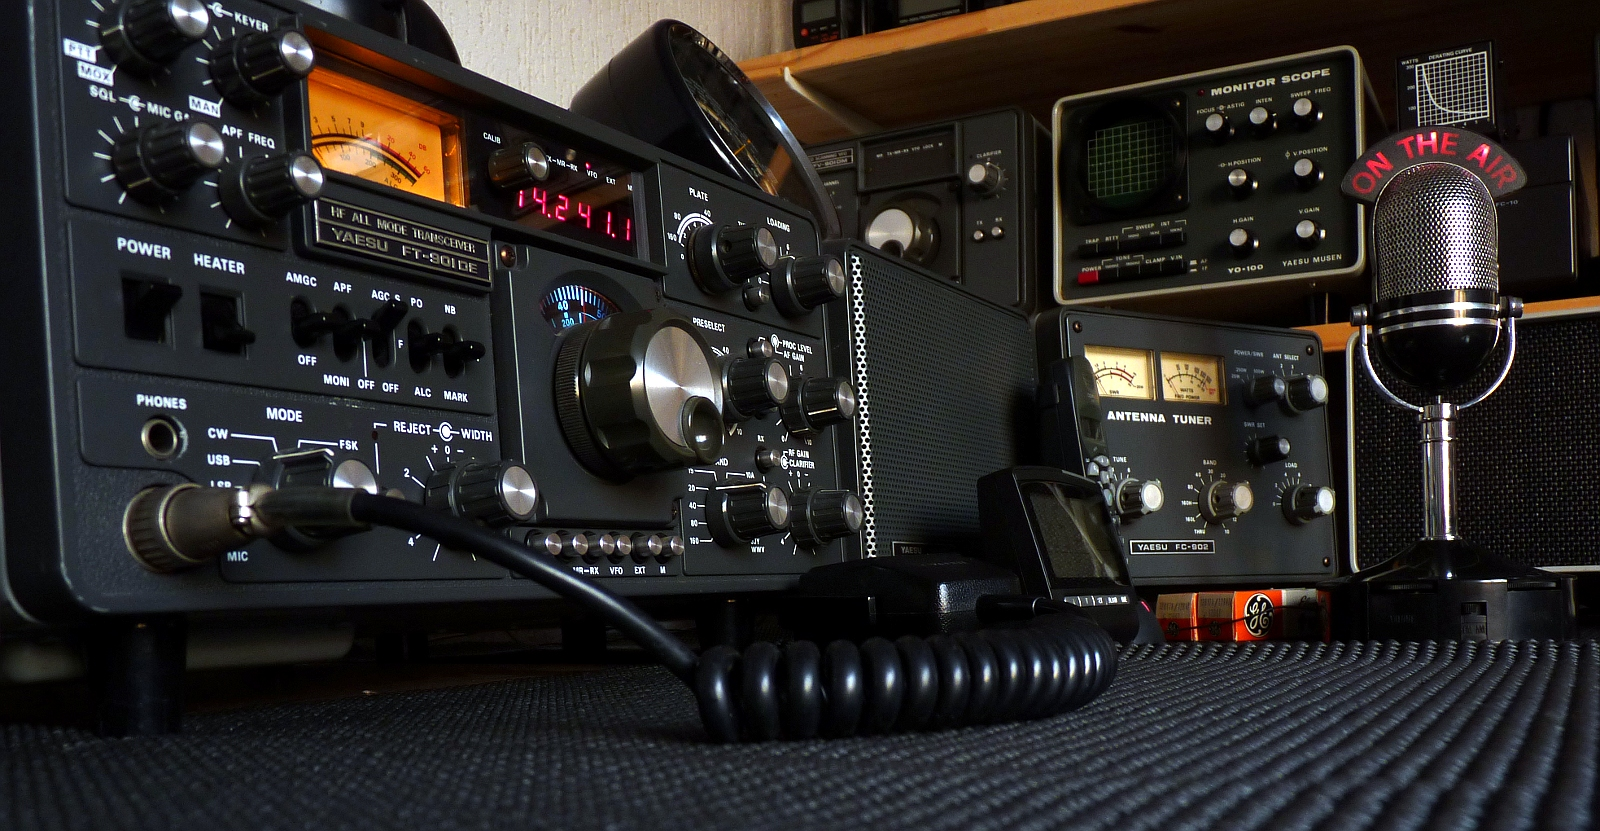 Radio Communication Methods During Emergencies- Part 1, by R. in NC